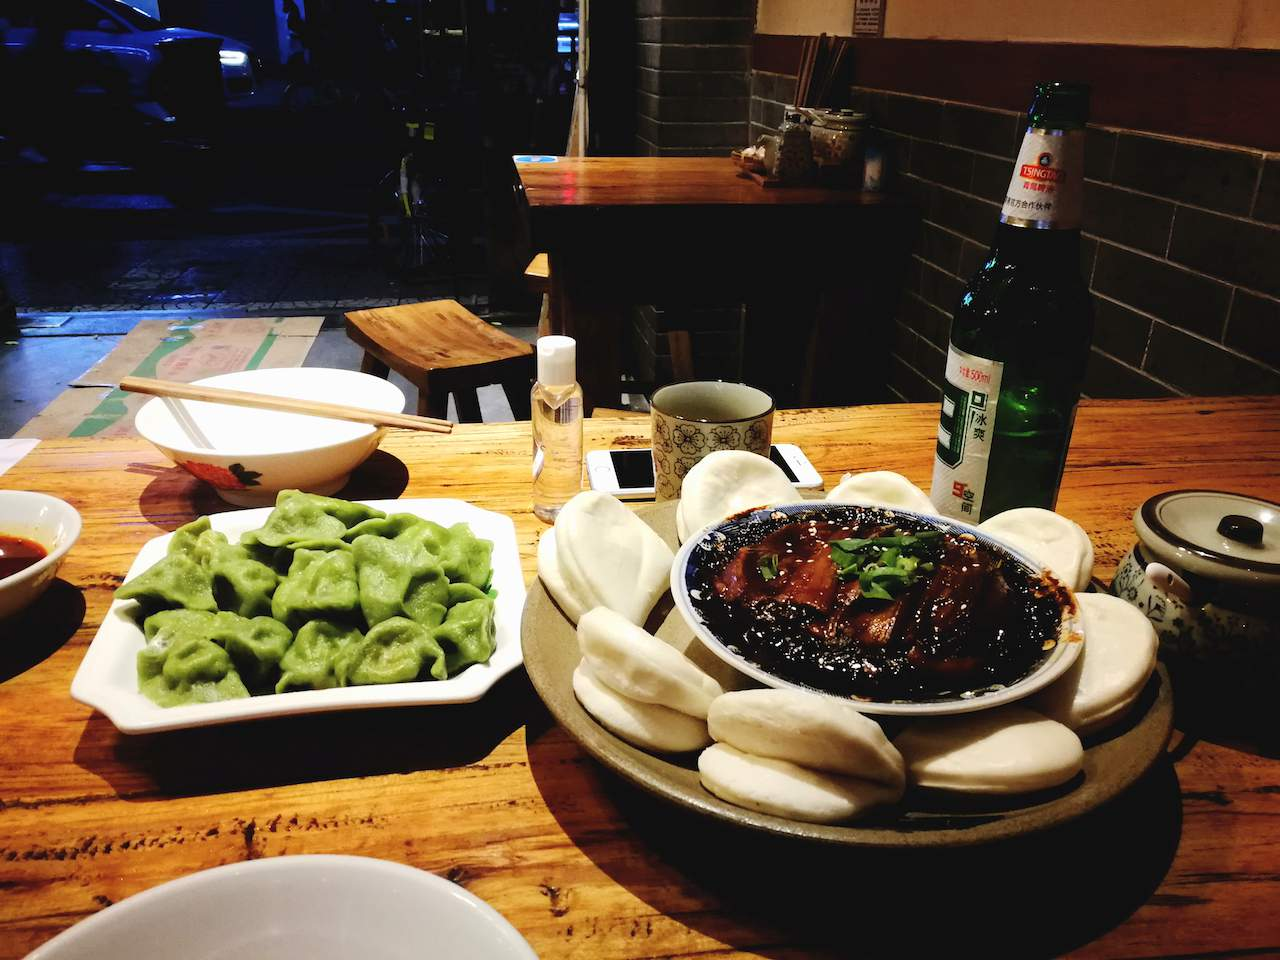 Spinach dumplings and pork belly in Xi'an